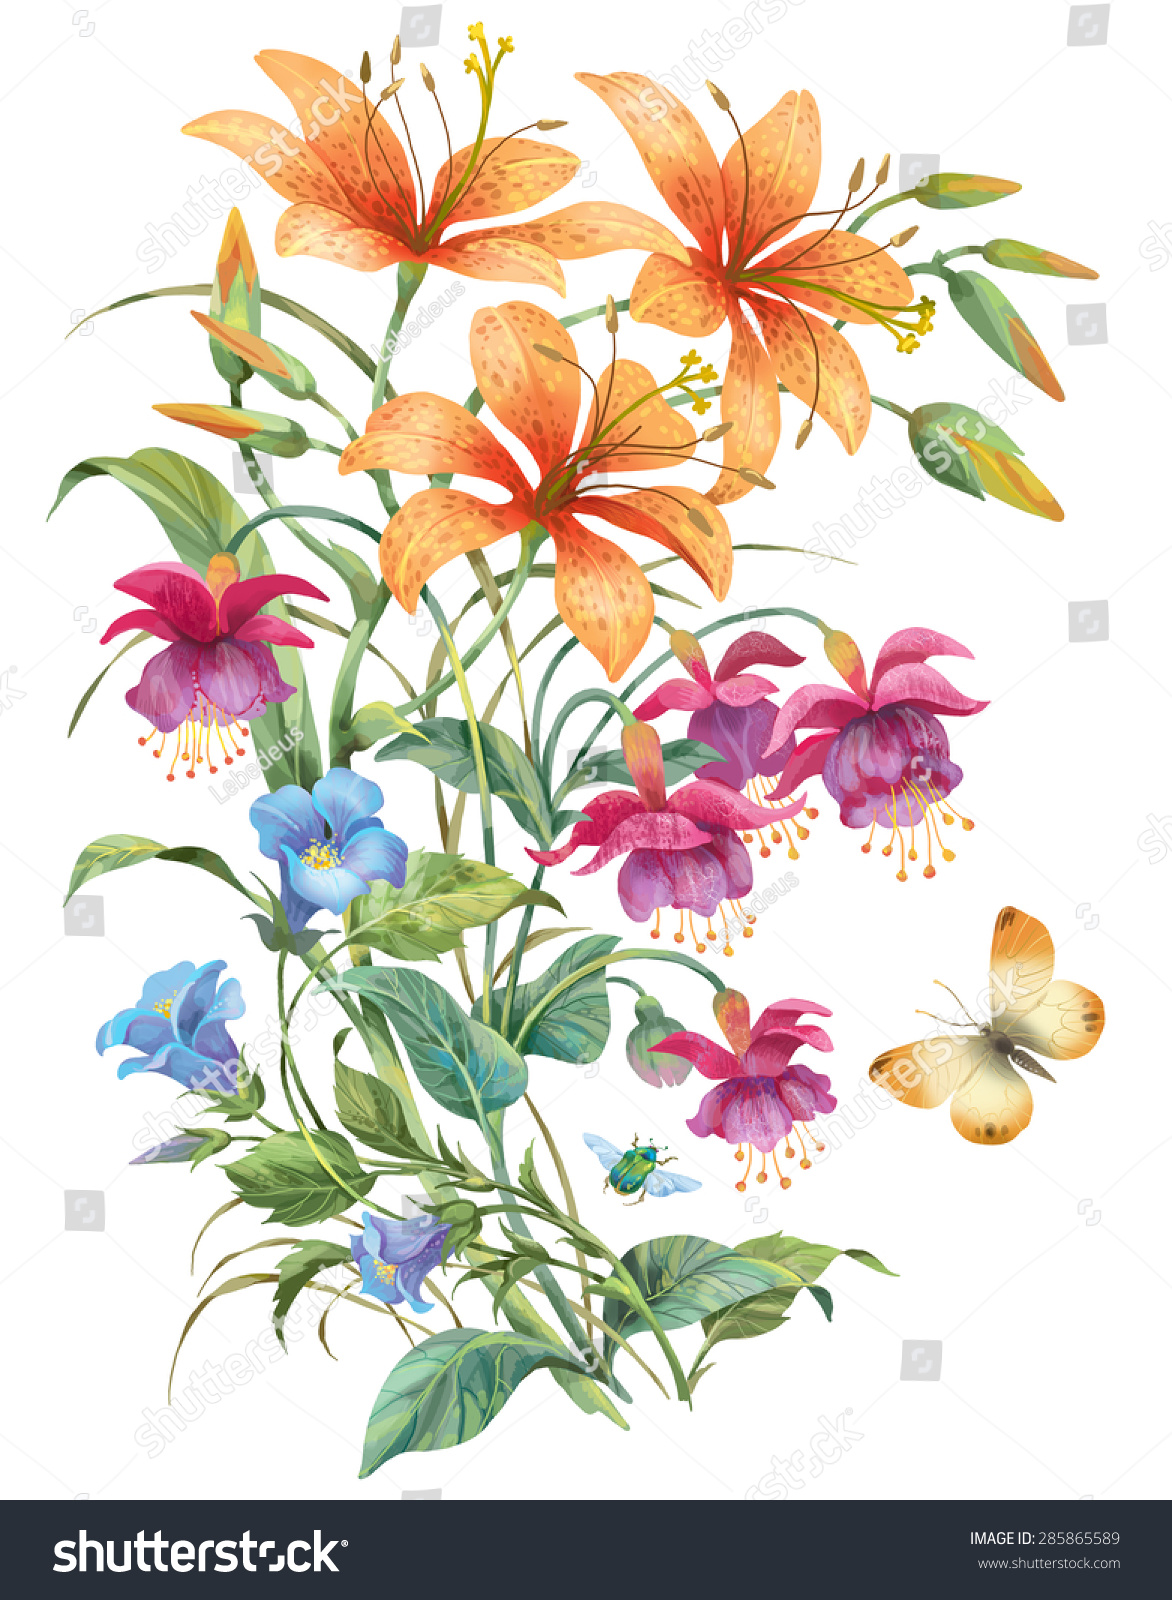 Floral composition different flowers herbs isolated stock floral composition of different flowers and herbs isolated on white background lilies and fuchsias izmirmasajfo